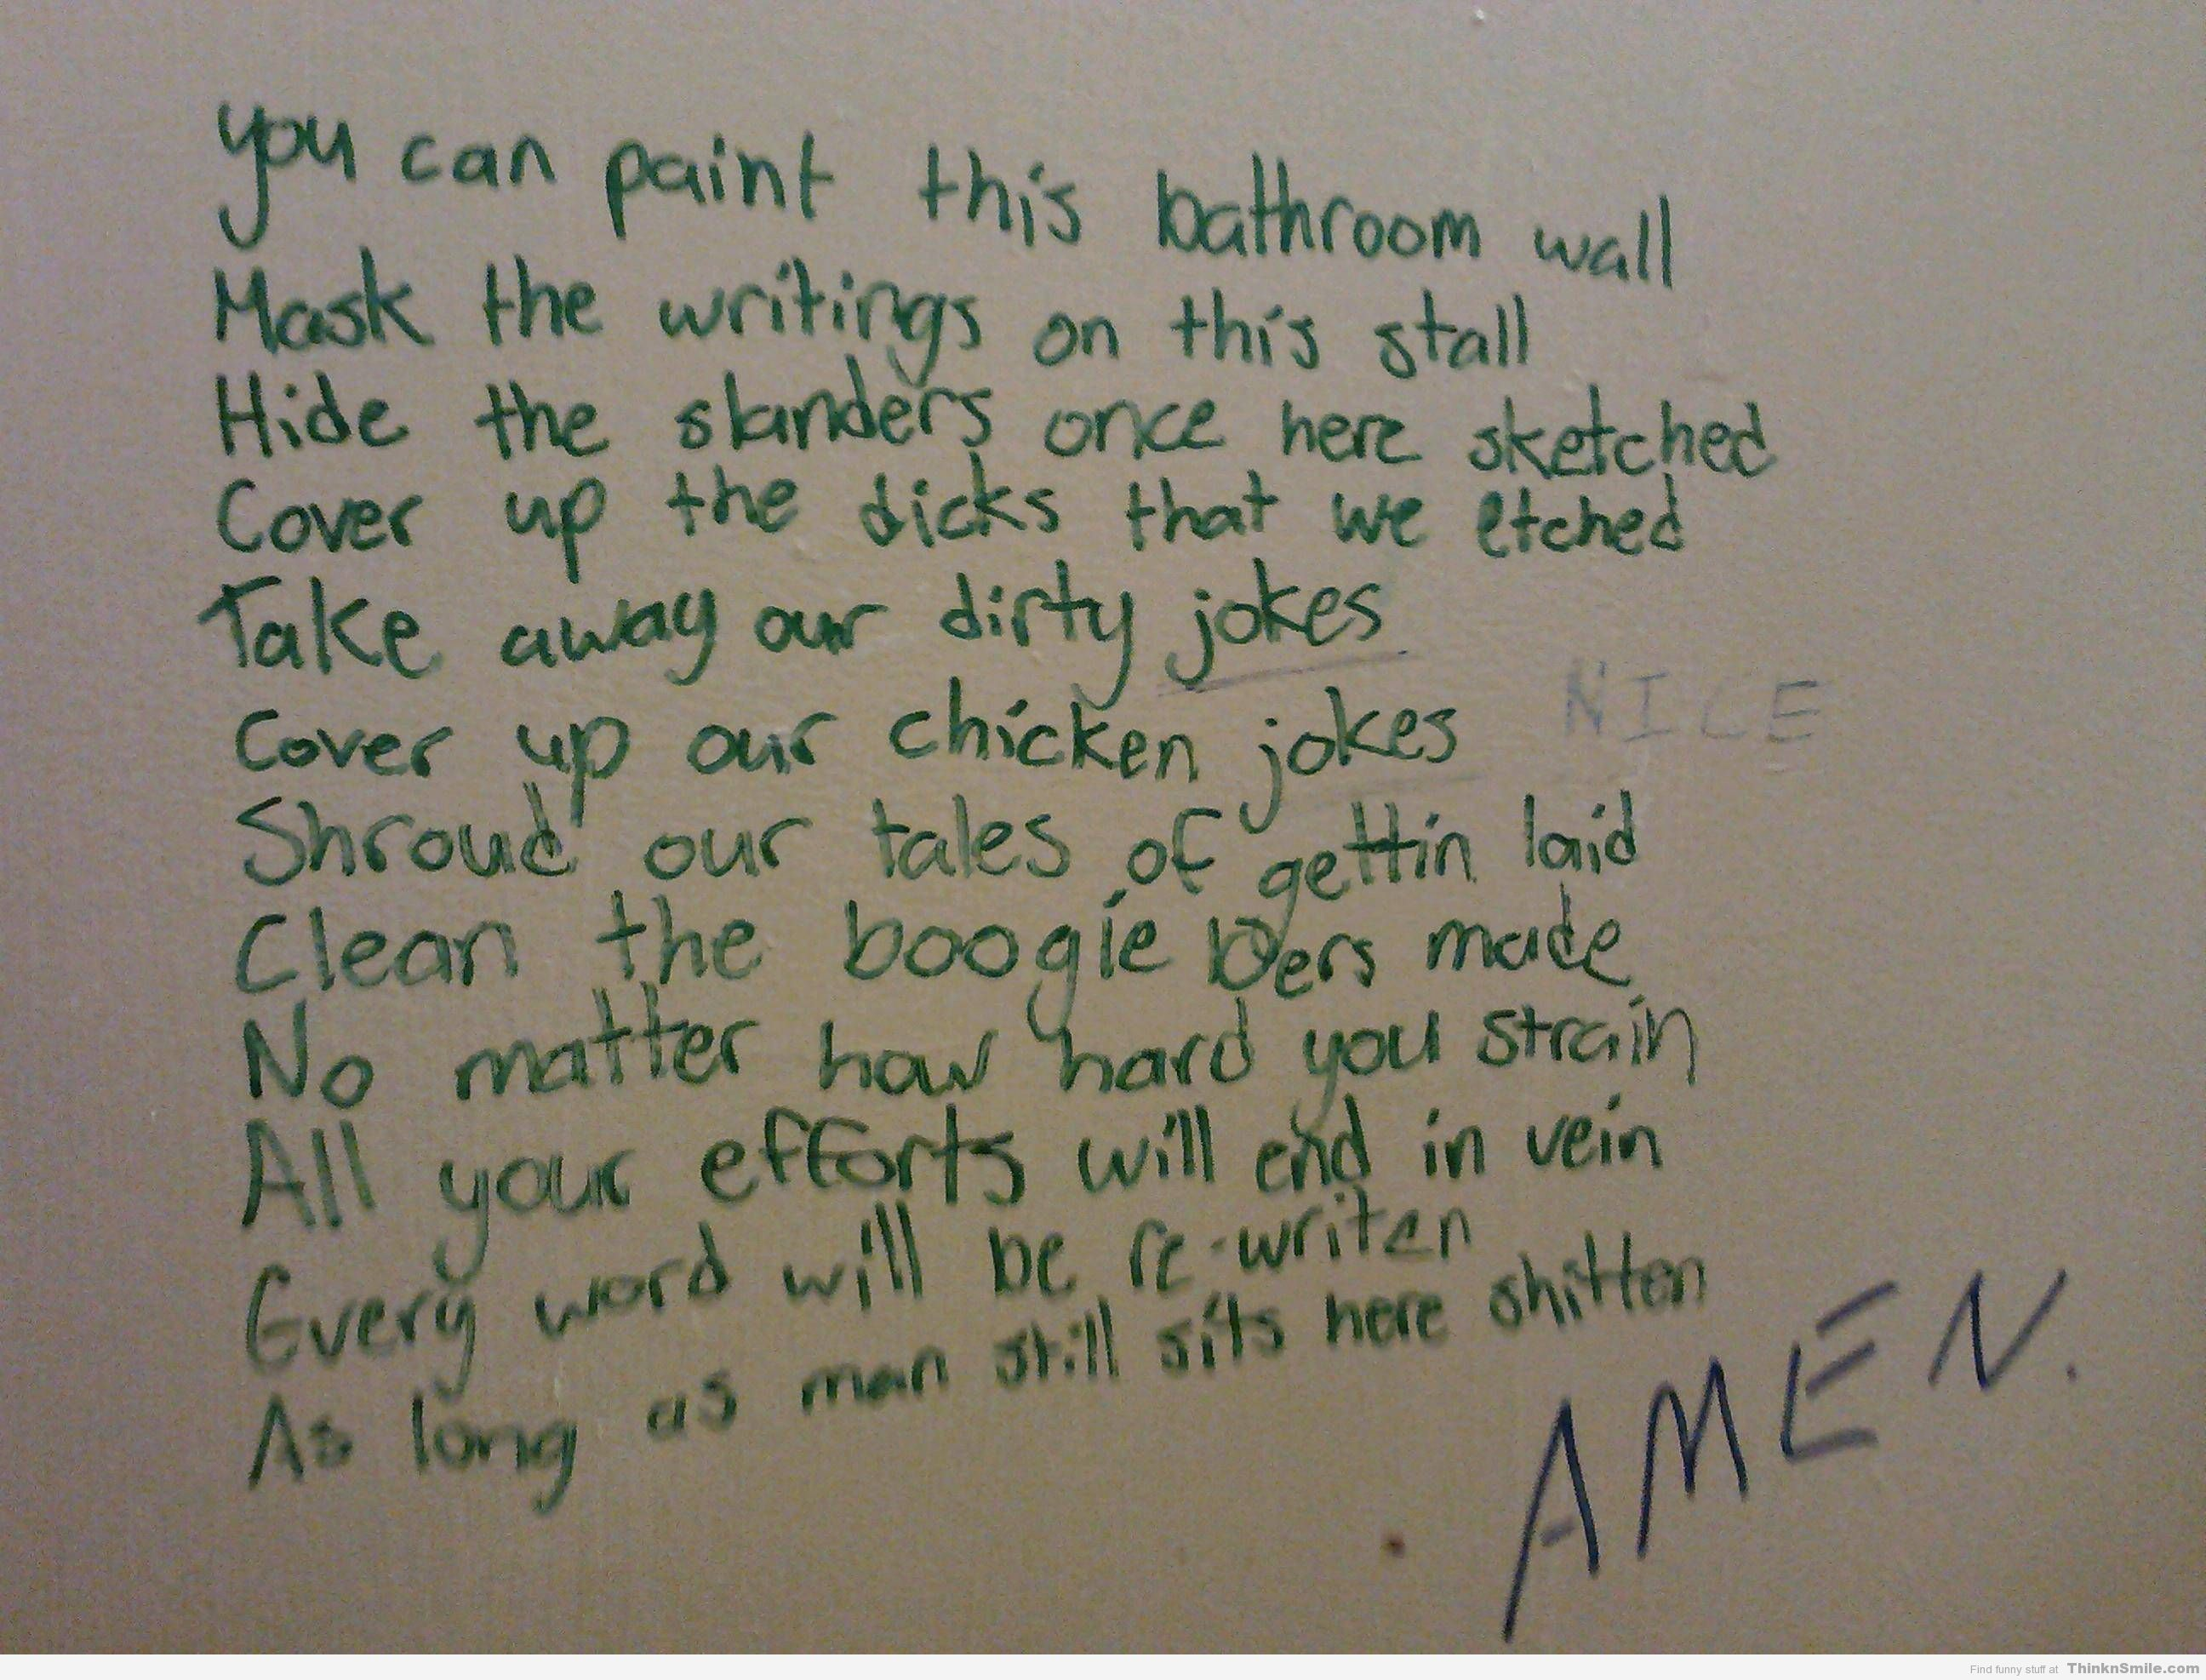 Epic Bathroom Stall Poem